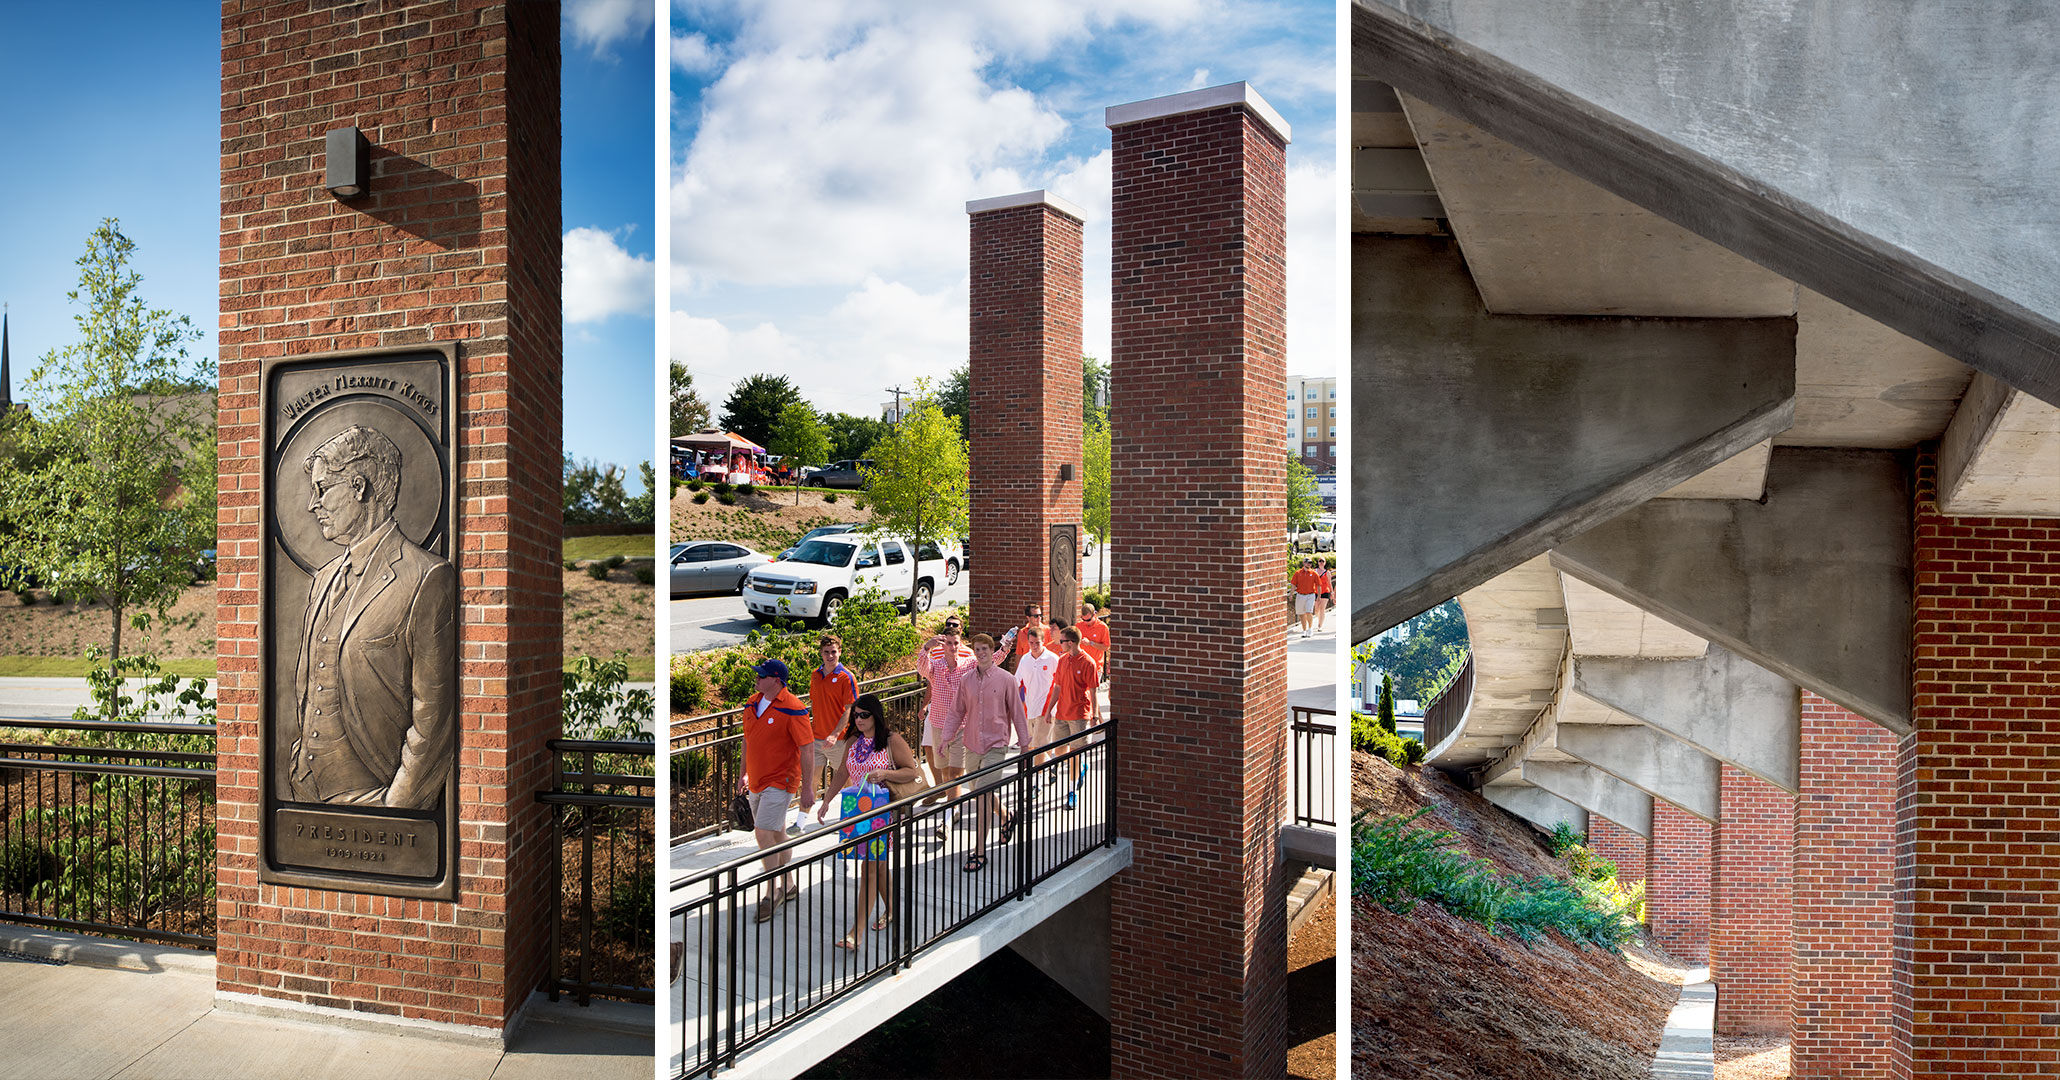 Clemson University hired Boudreaux master planners to improve campus safety with secure walkways to handle student traffic.